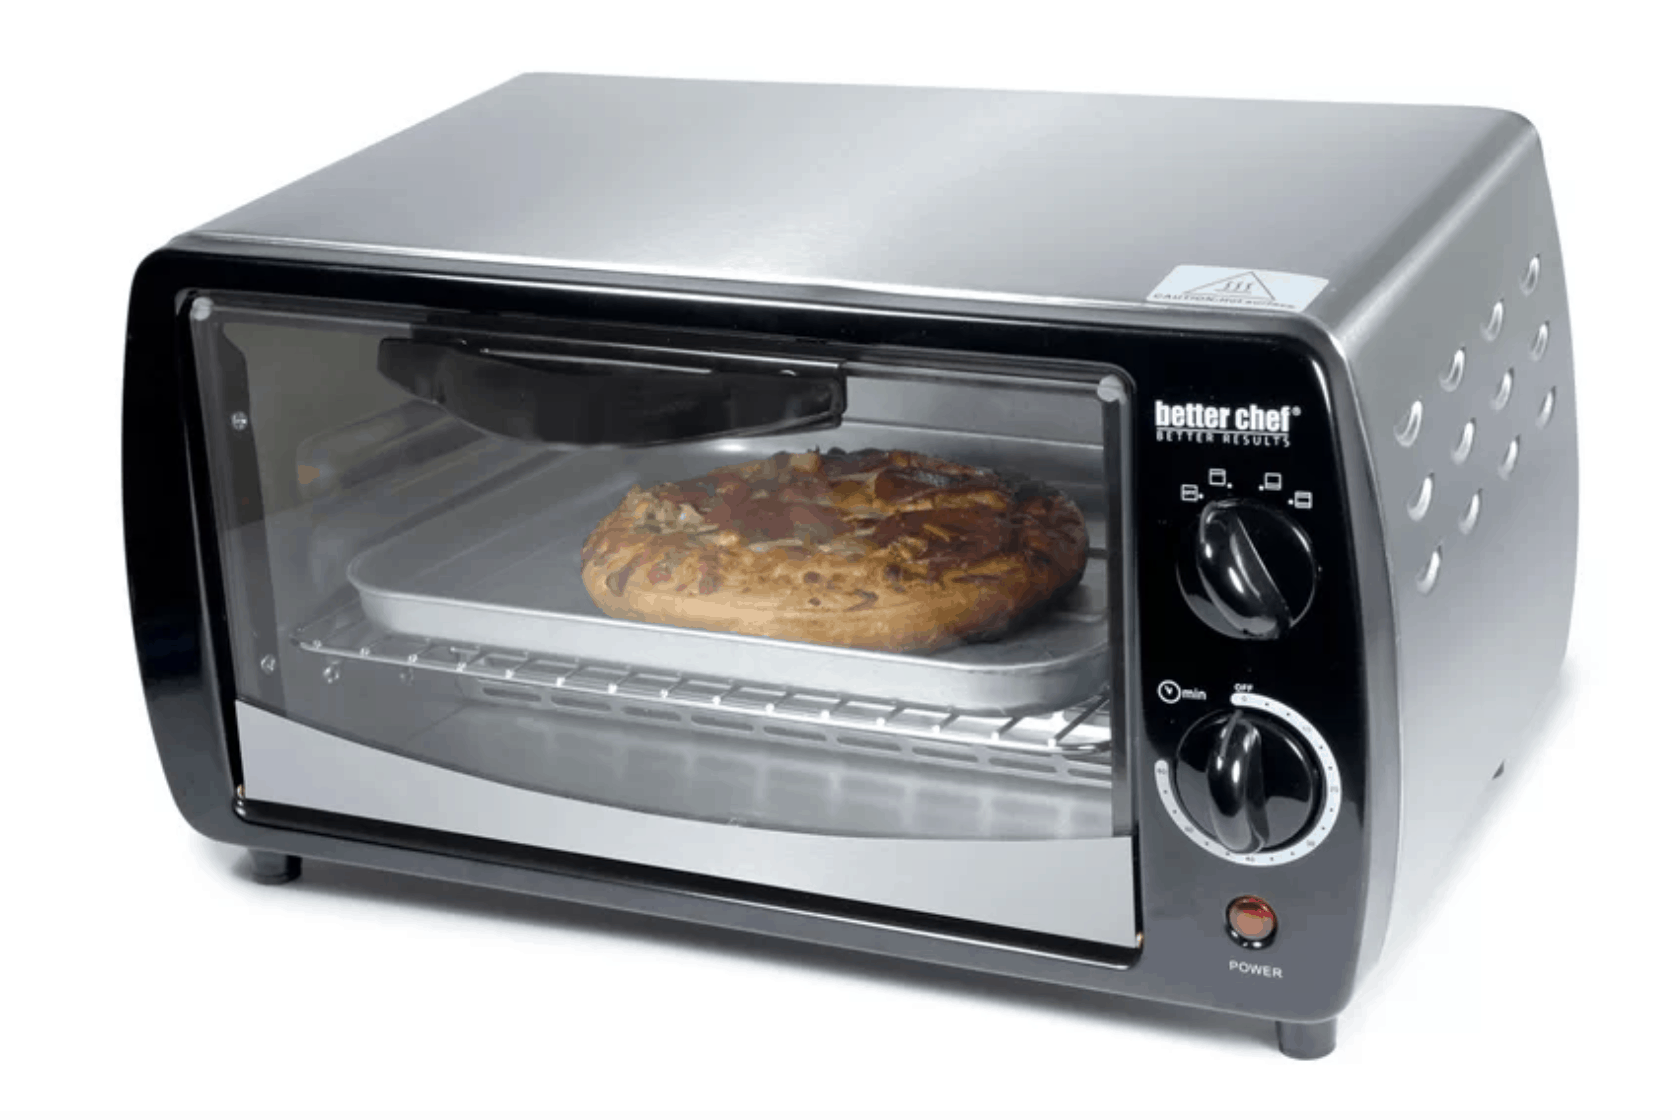 Compact toaster oven by better chef